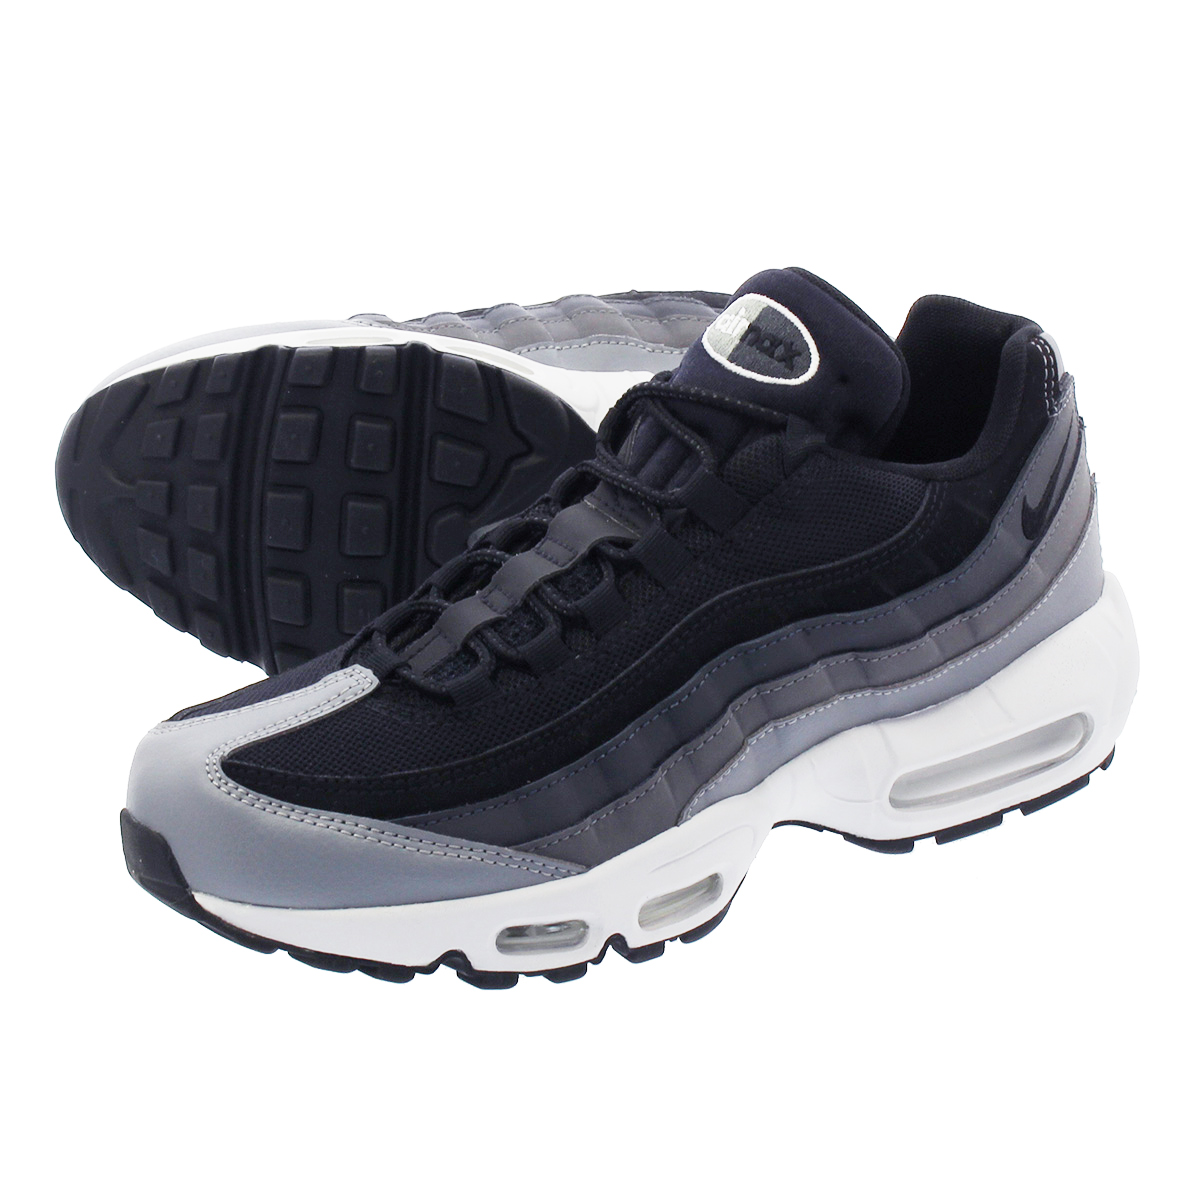 promo code c25b6 2461a NIKE AIR MAX 95 ESSENTIAL Kie Ney AMAX 95 essential BLACK ANTHRACITE DARK  GREY